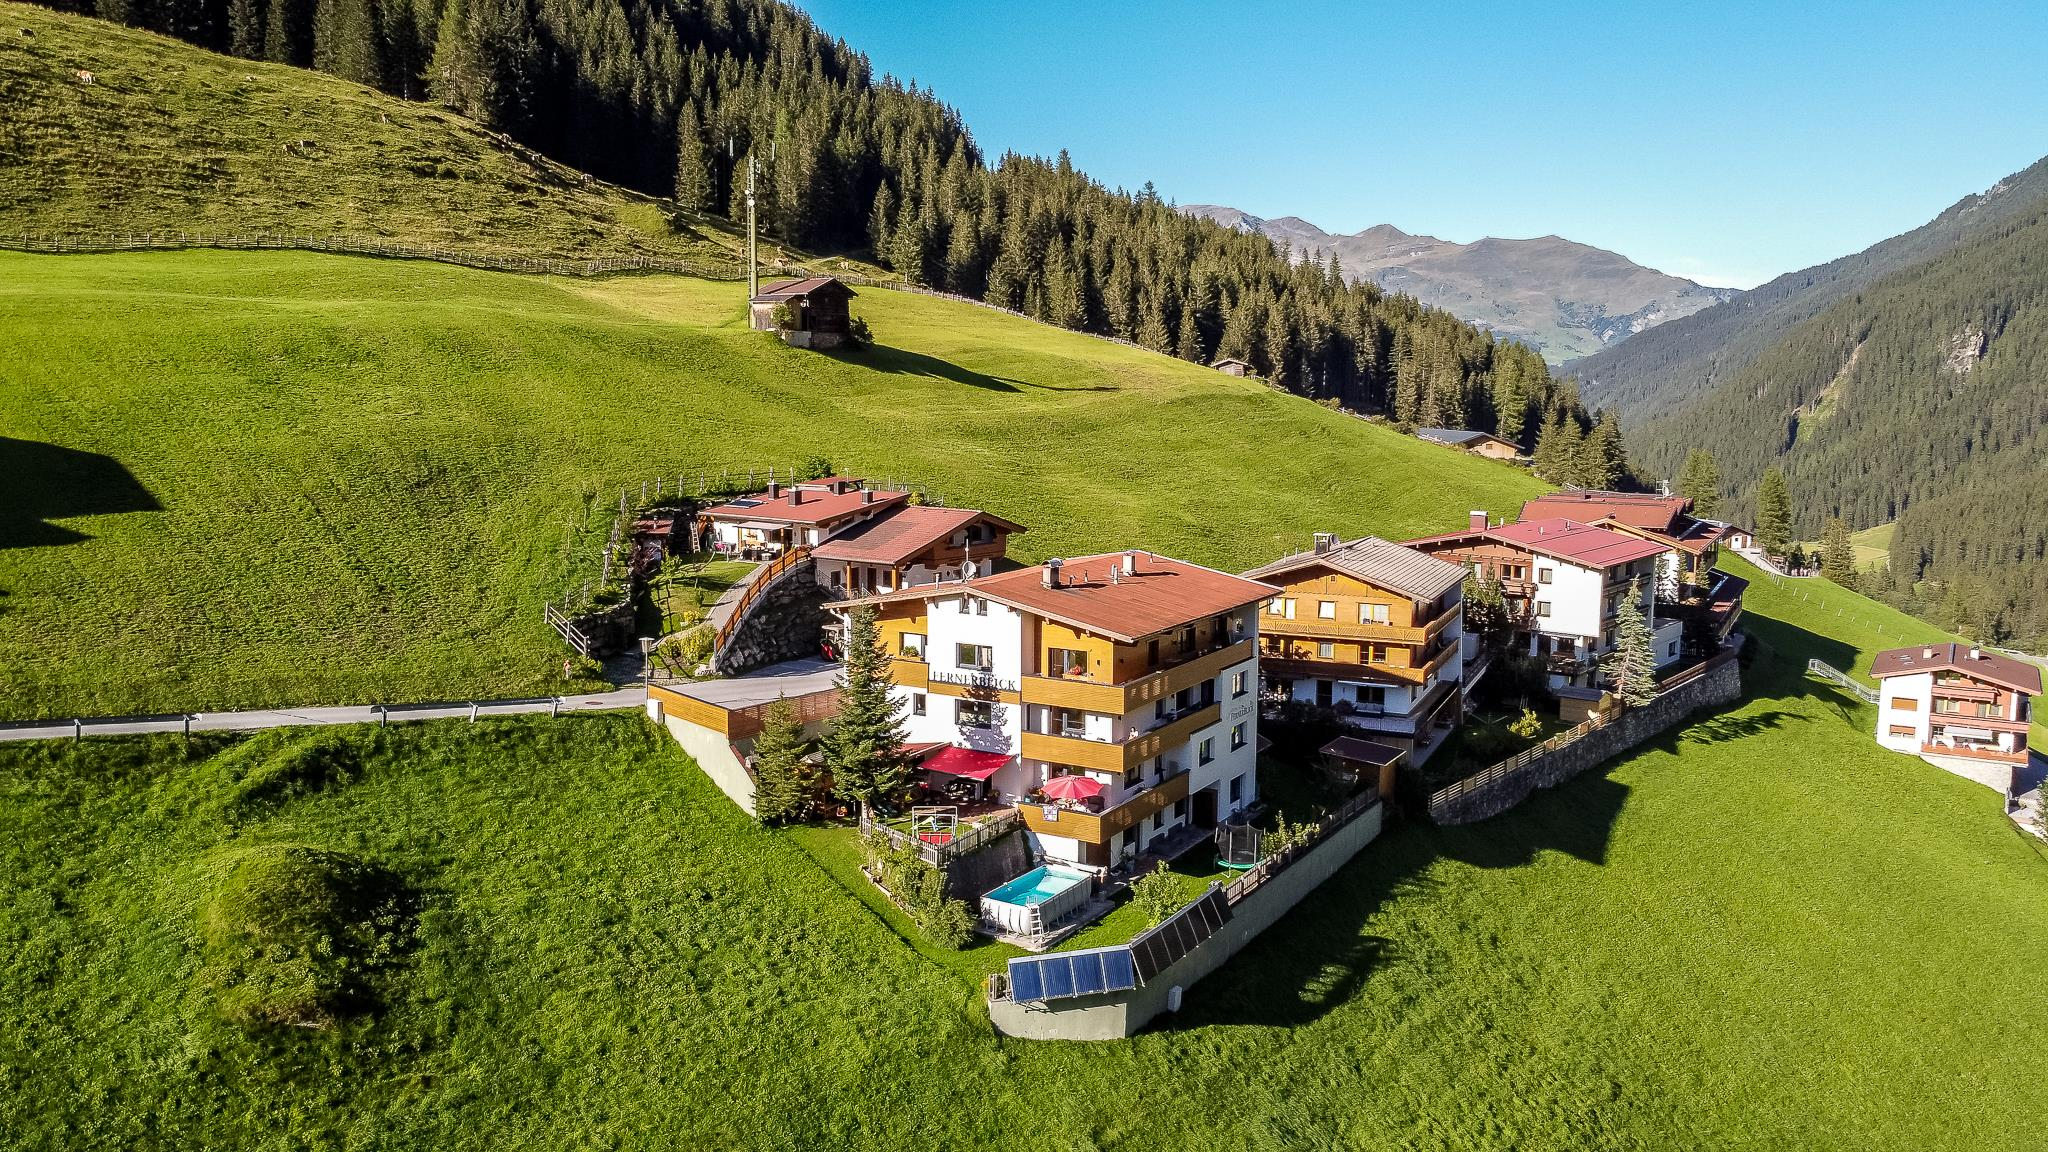 Fernerblick Apartments Hintertux Ansicht Sommer